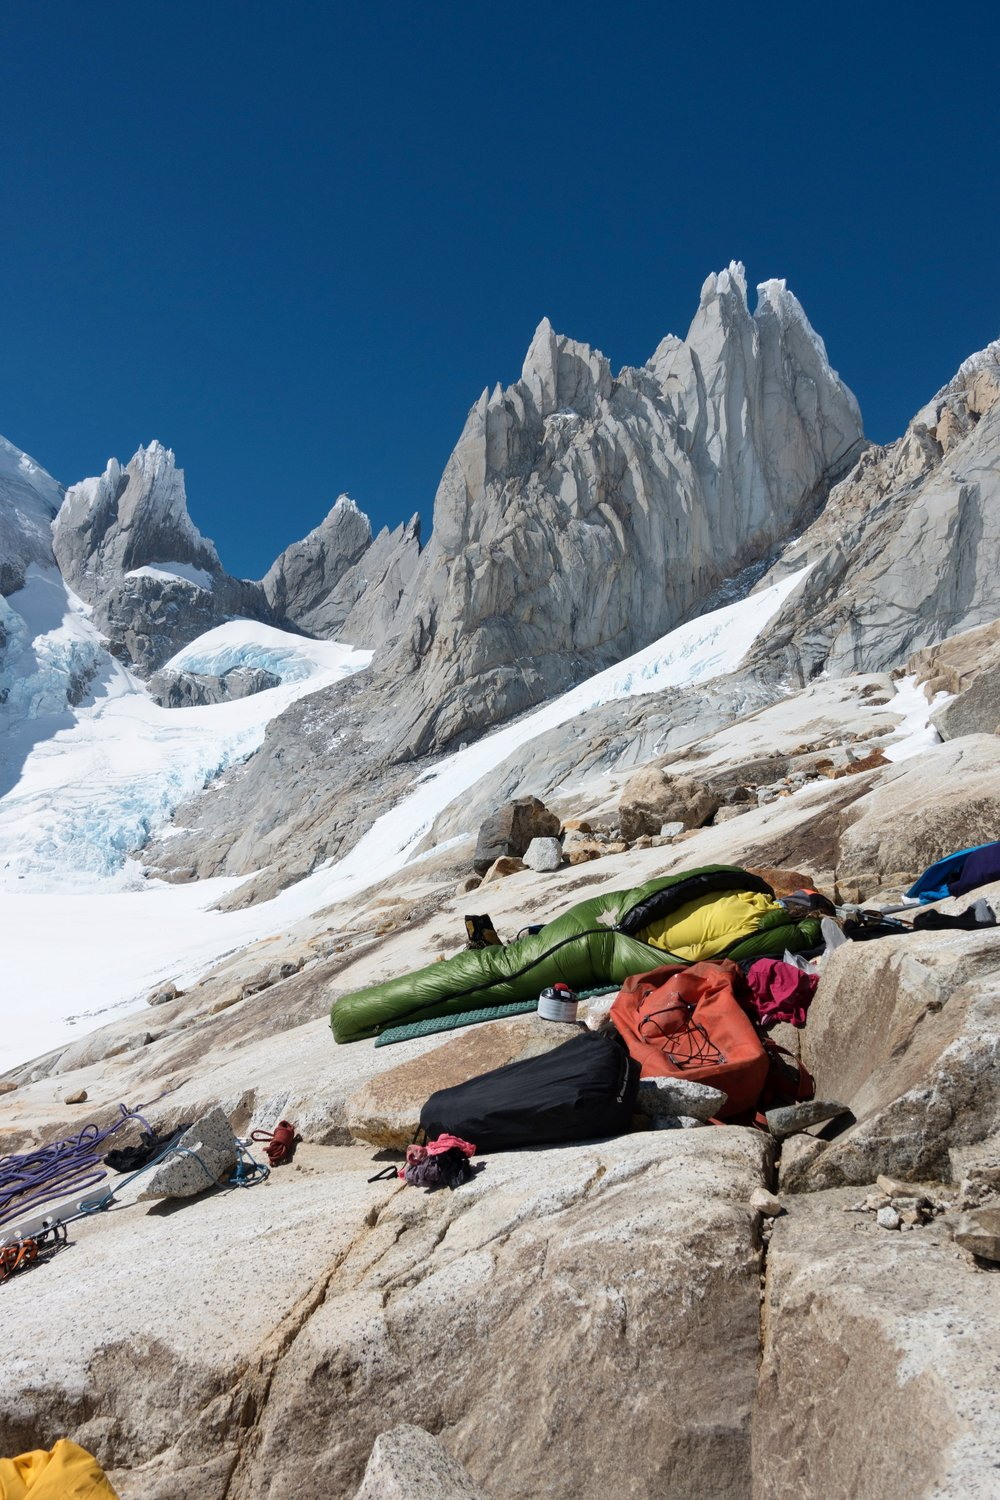 Resting in the sun after living in snow for two days! Letting the gear dry out and the temperature cool down before we continue up Cerro Torre West Face. Photo by Michelle Kadatz.